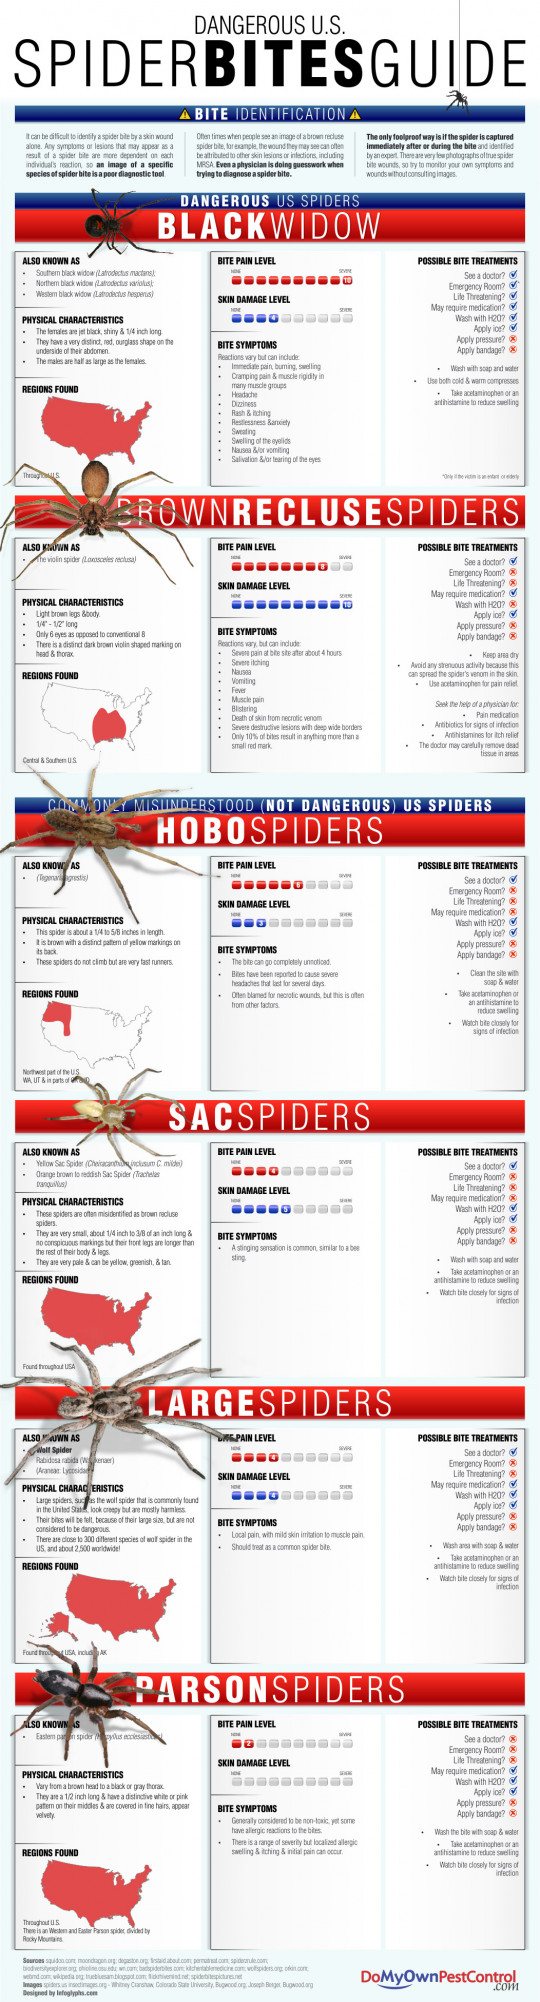 Dangerous U.S. Spider Bites Guide